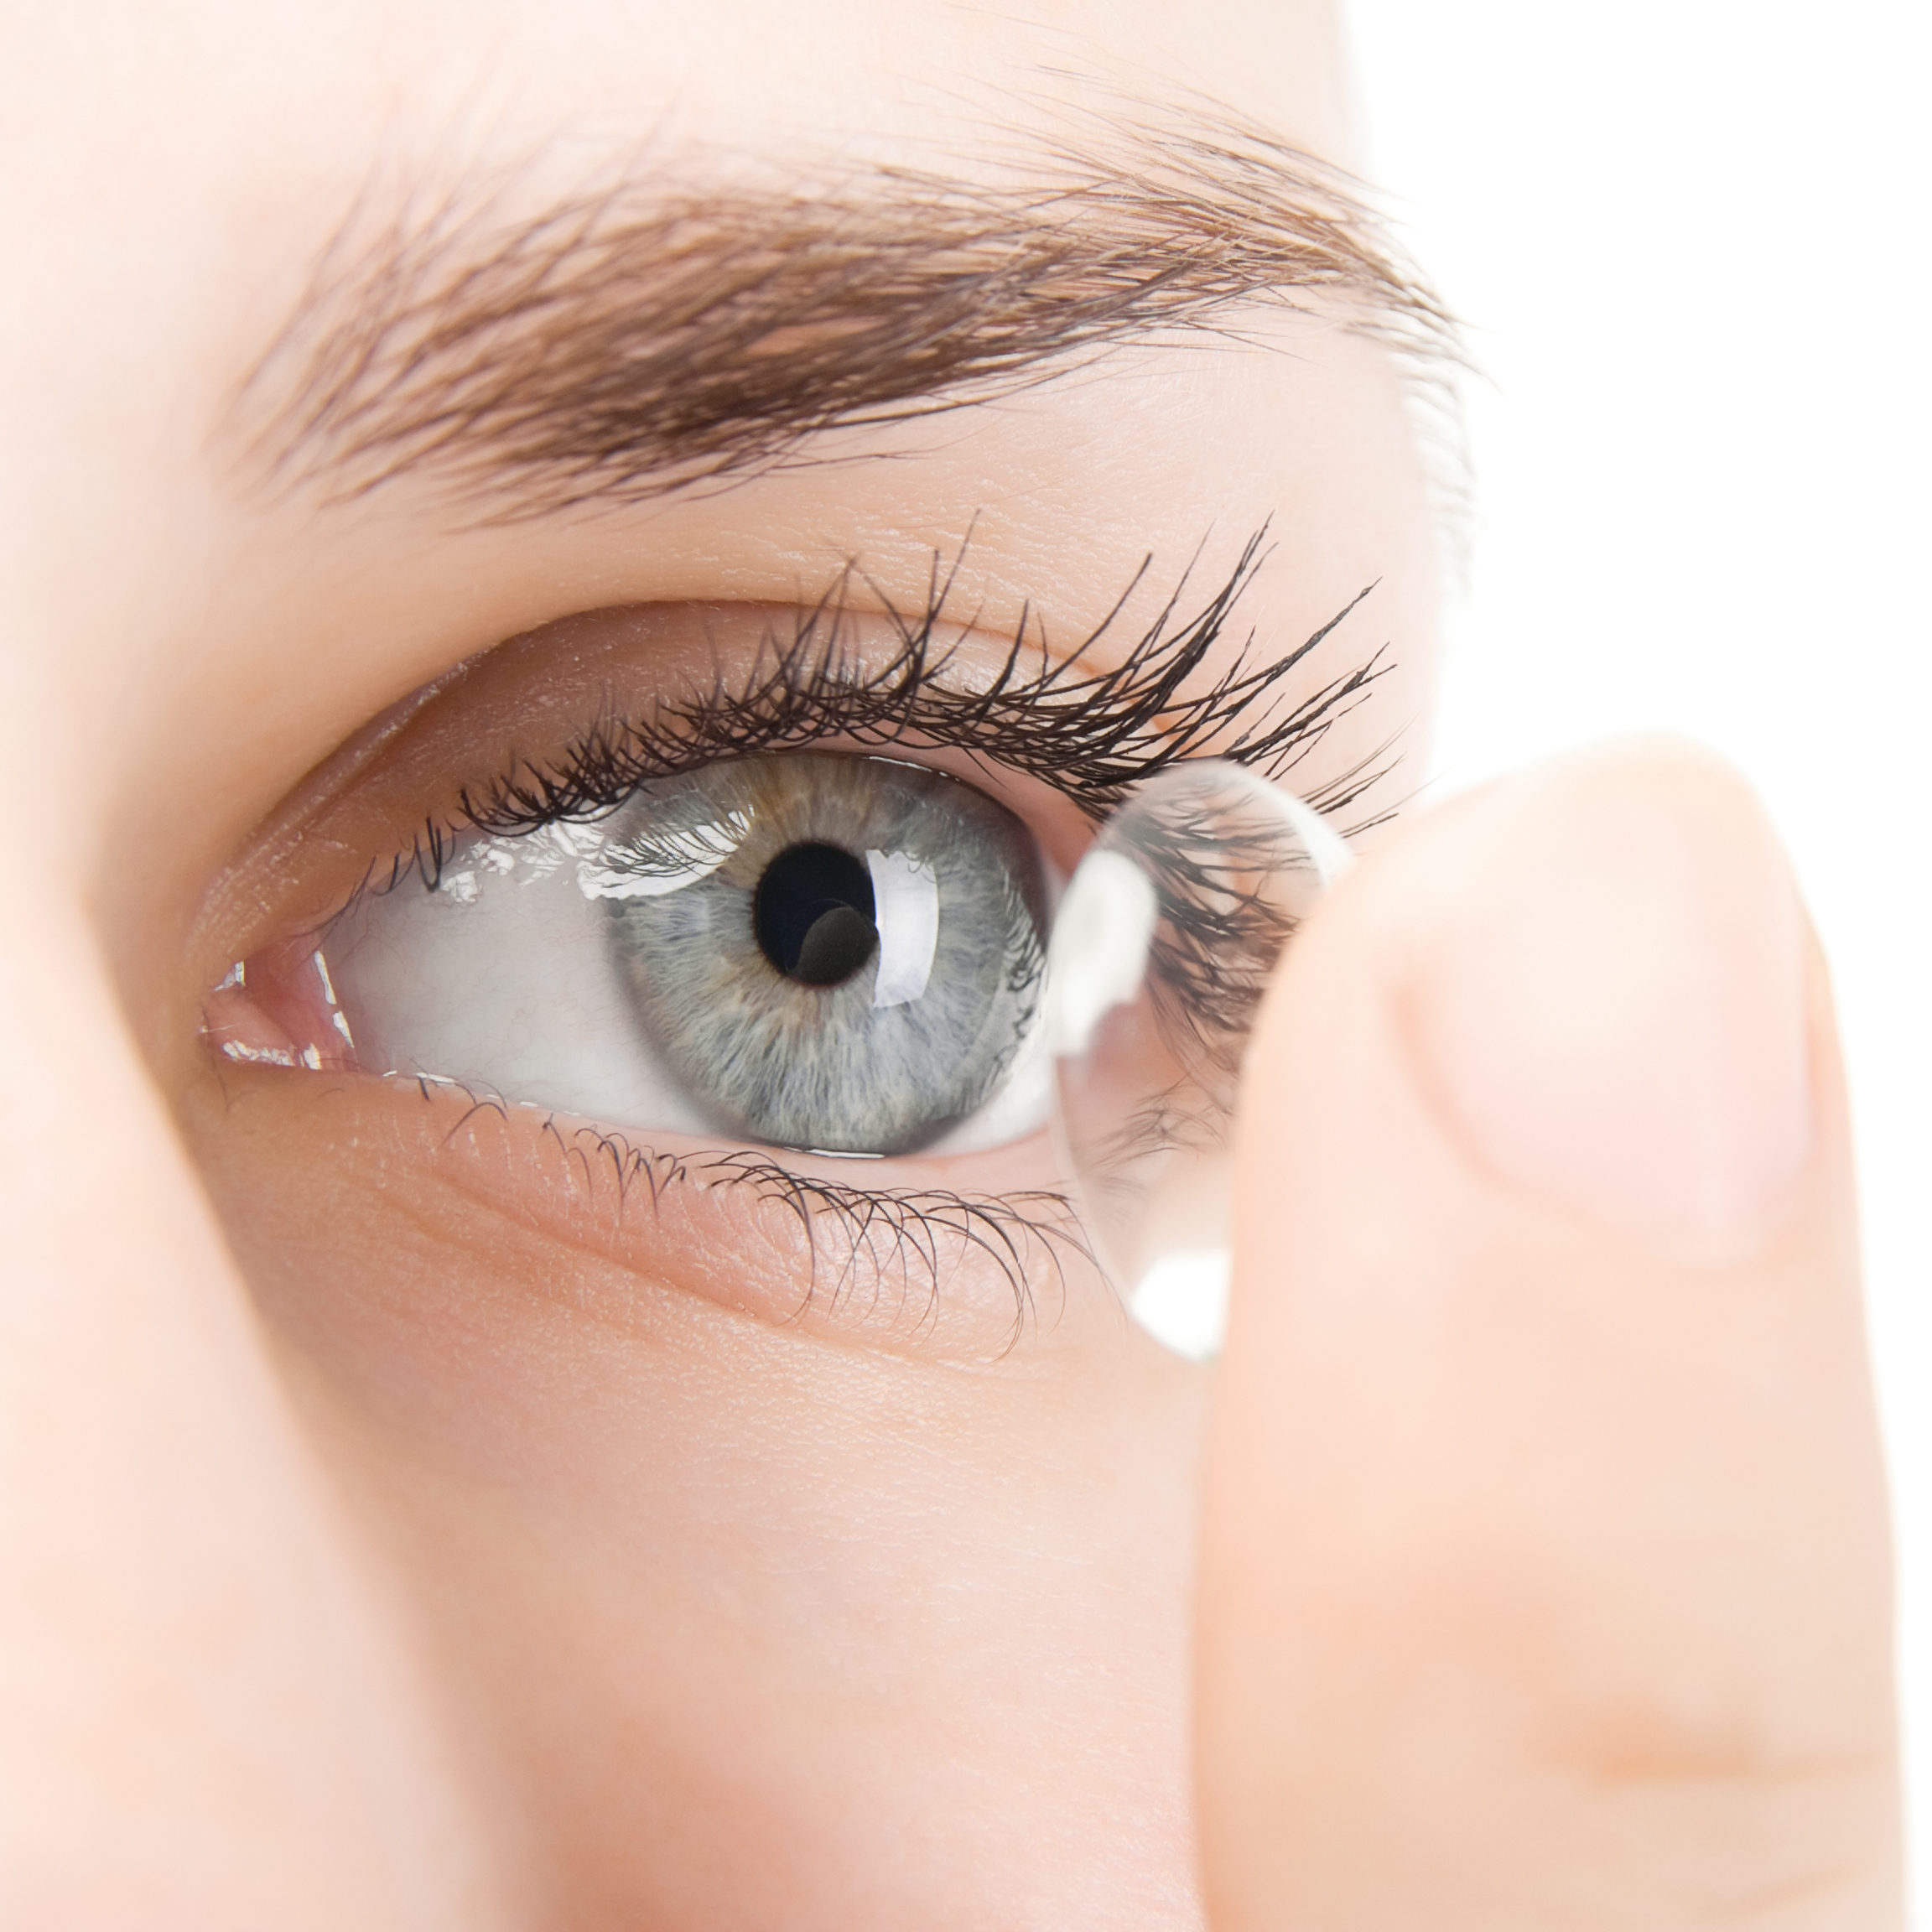 Inserting contact lenses on the eye.